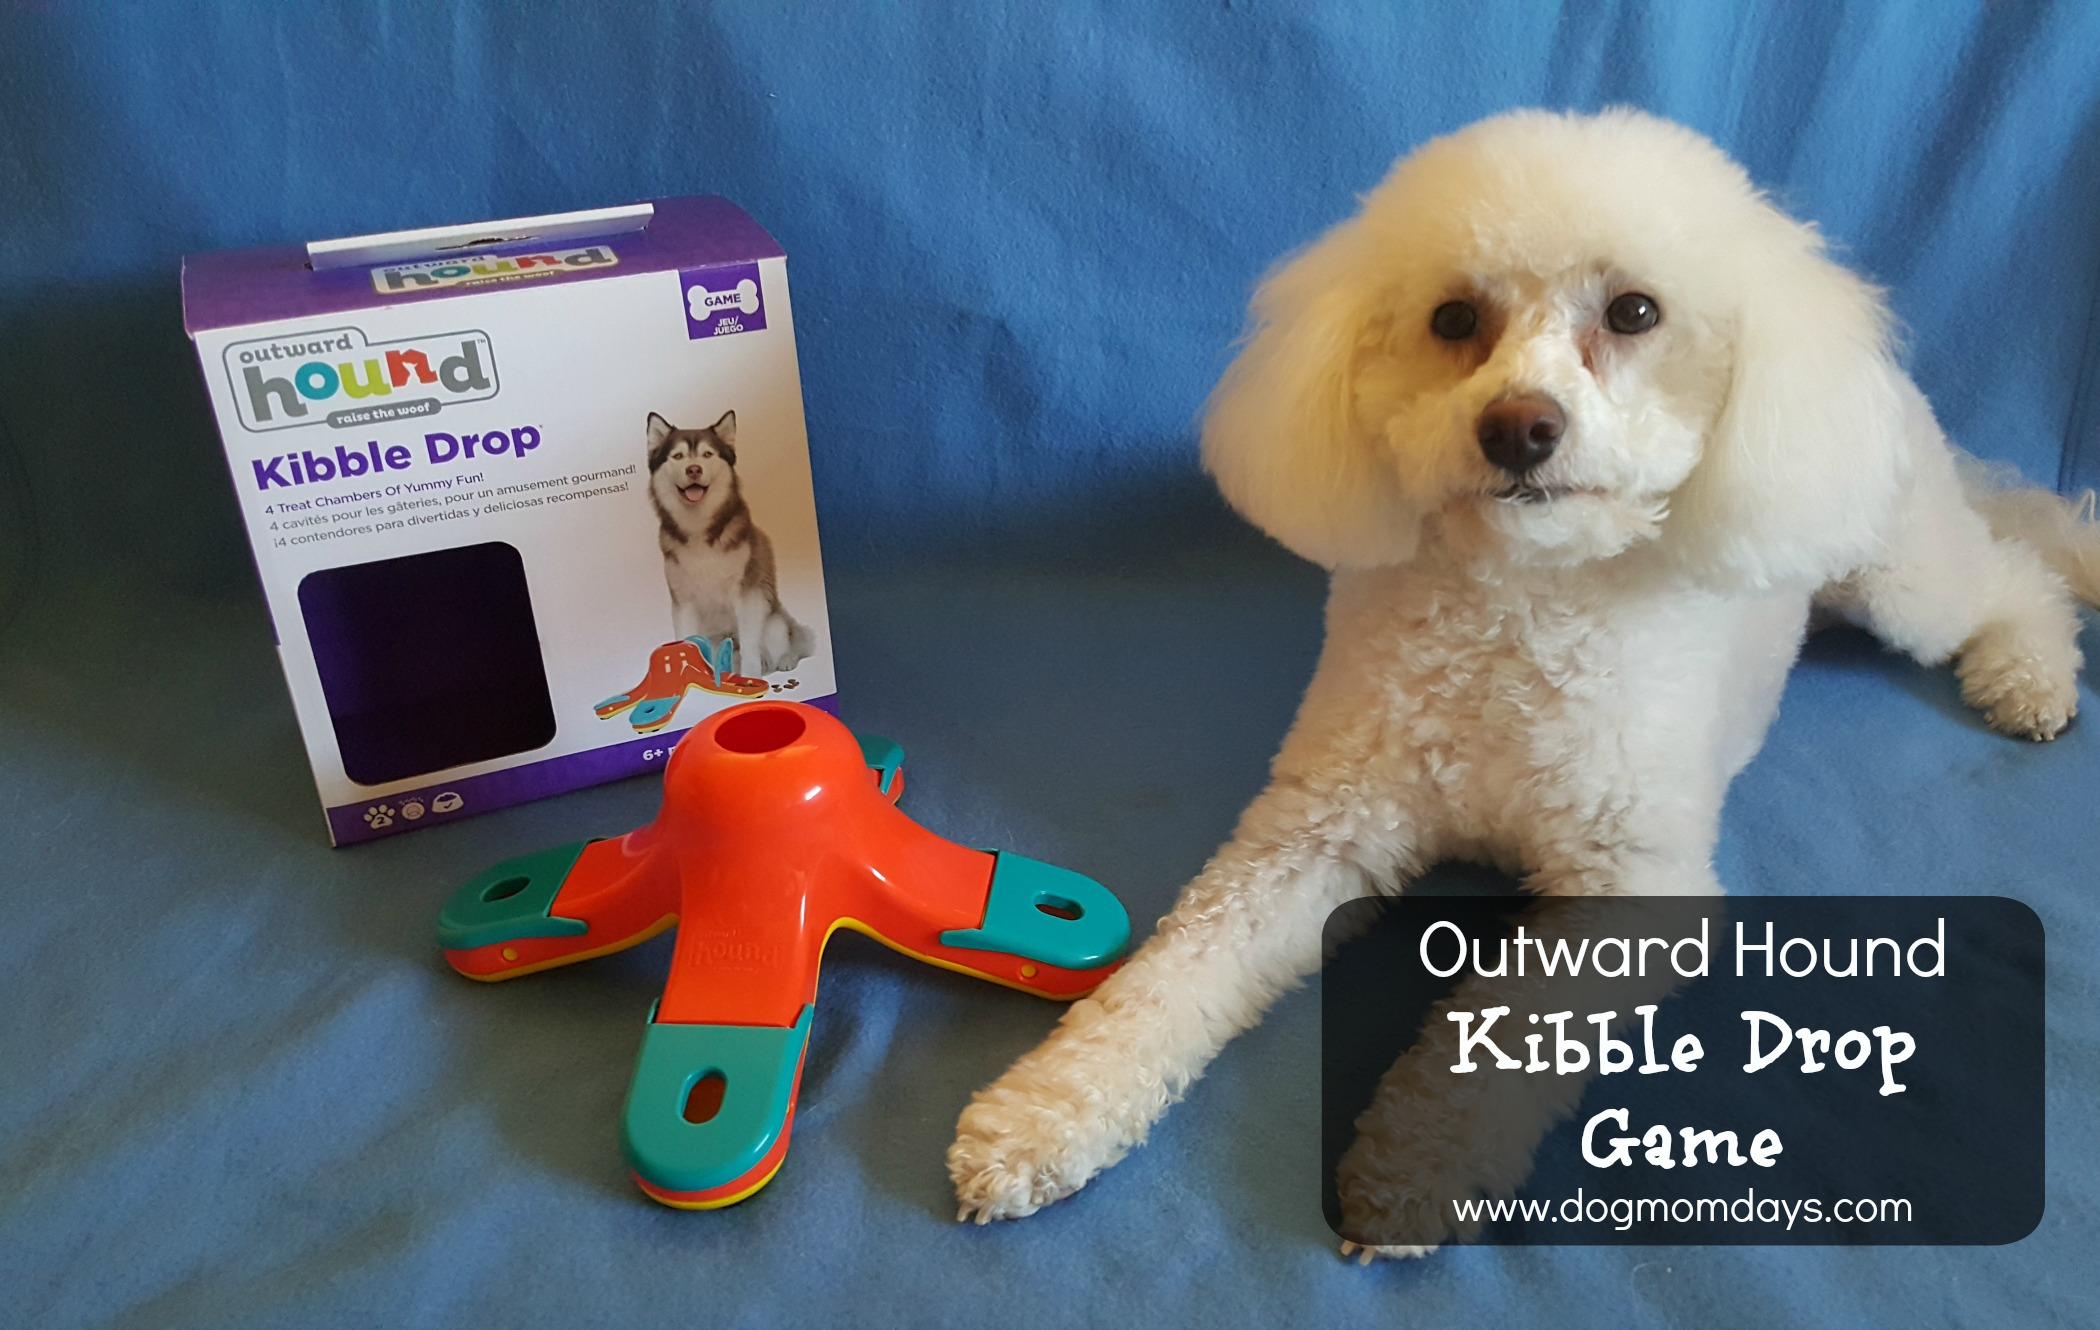 Outward Hound kibble drop game for dogs